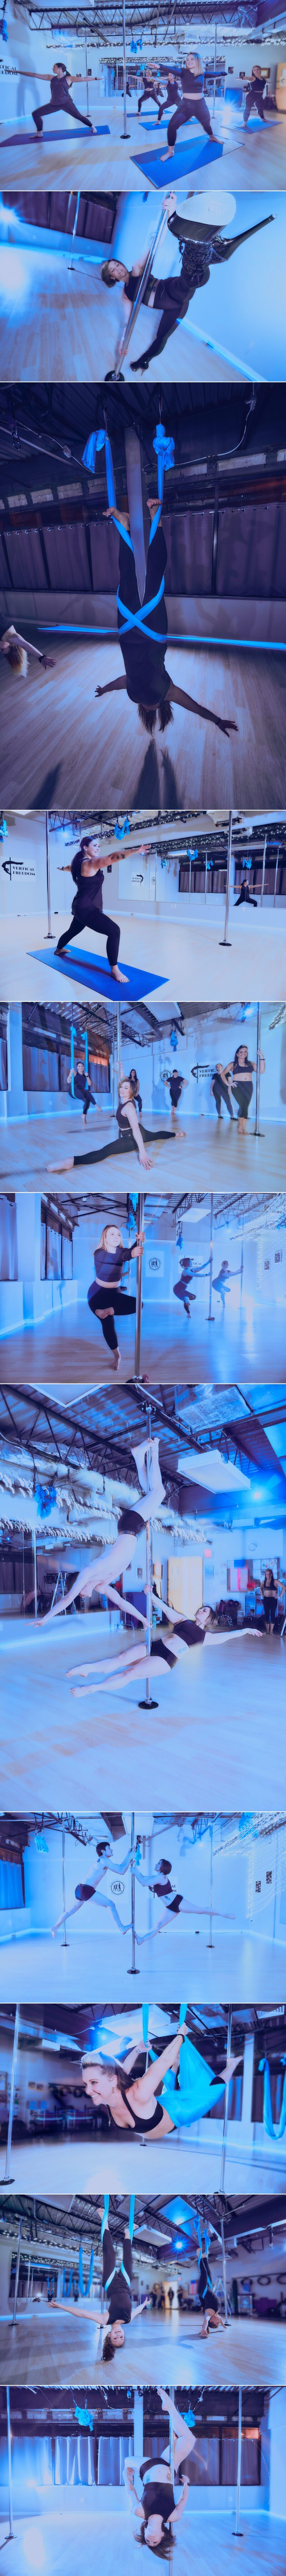 Vertical Freedom Jo-Ann's Dance Studio South Plainfield New Jersey